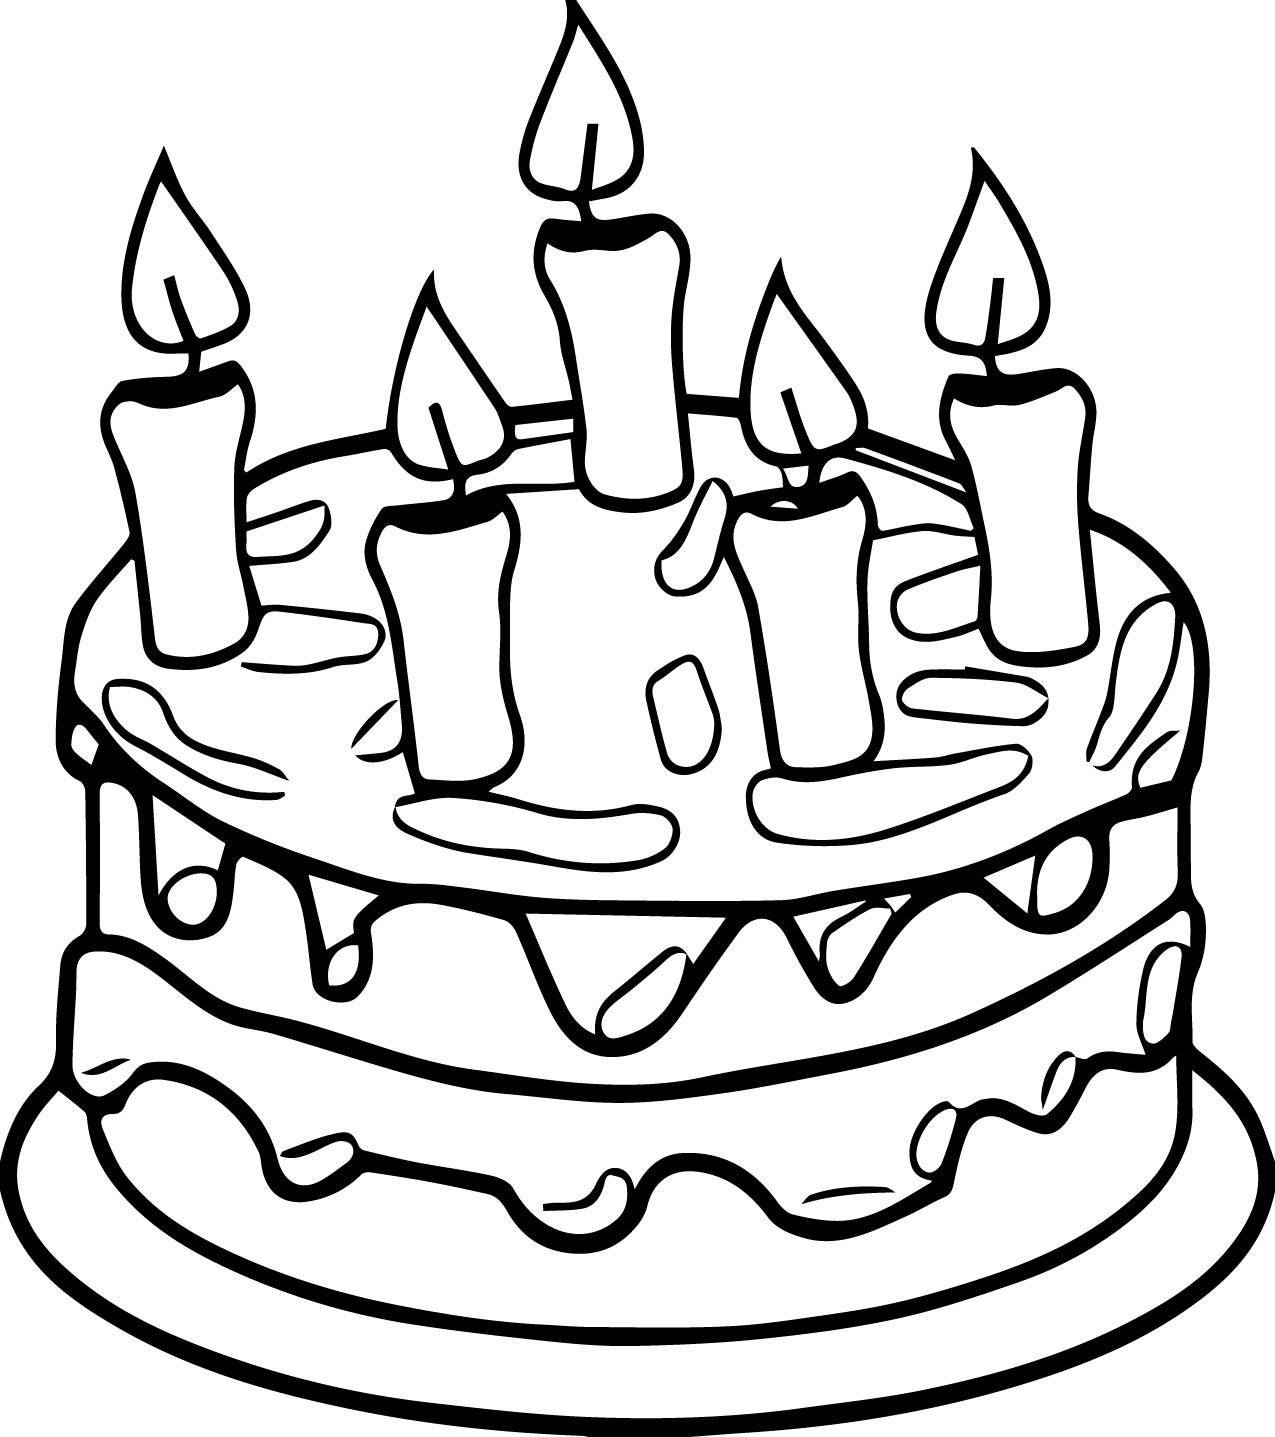 Pictures Of Cake To Colour In : Birthday Cake Colouring Pages - ClipArt Best